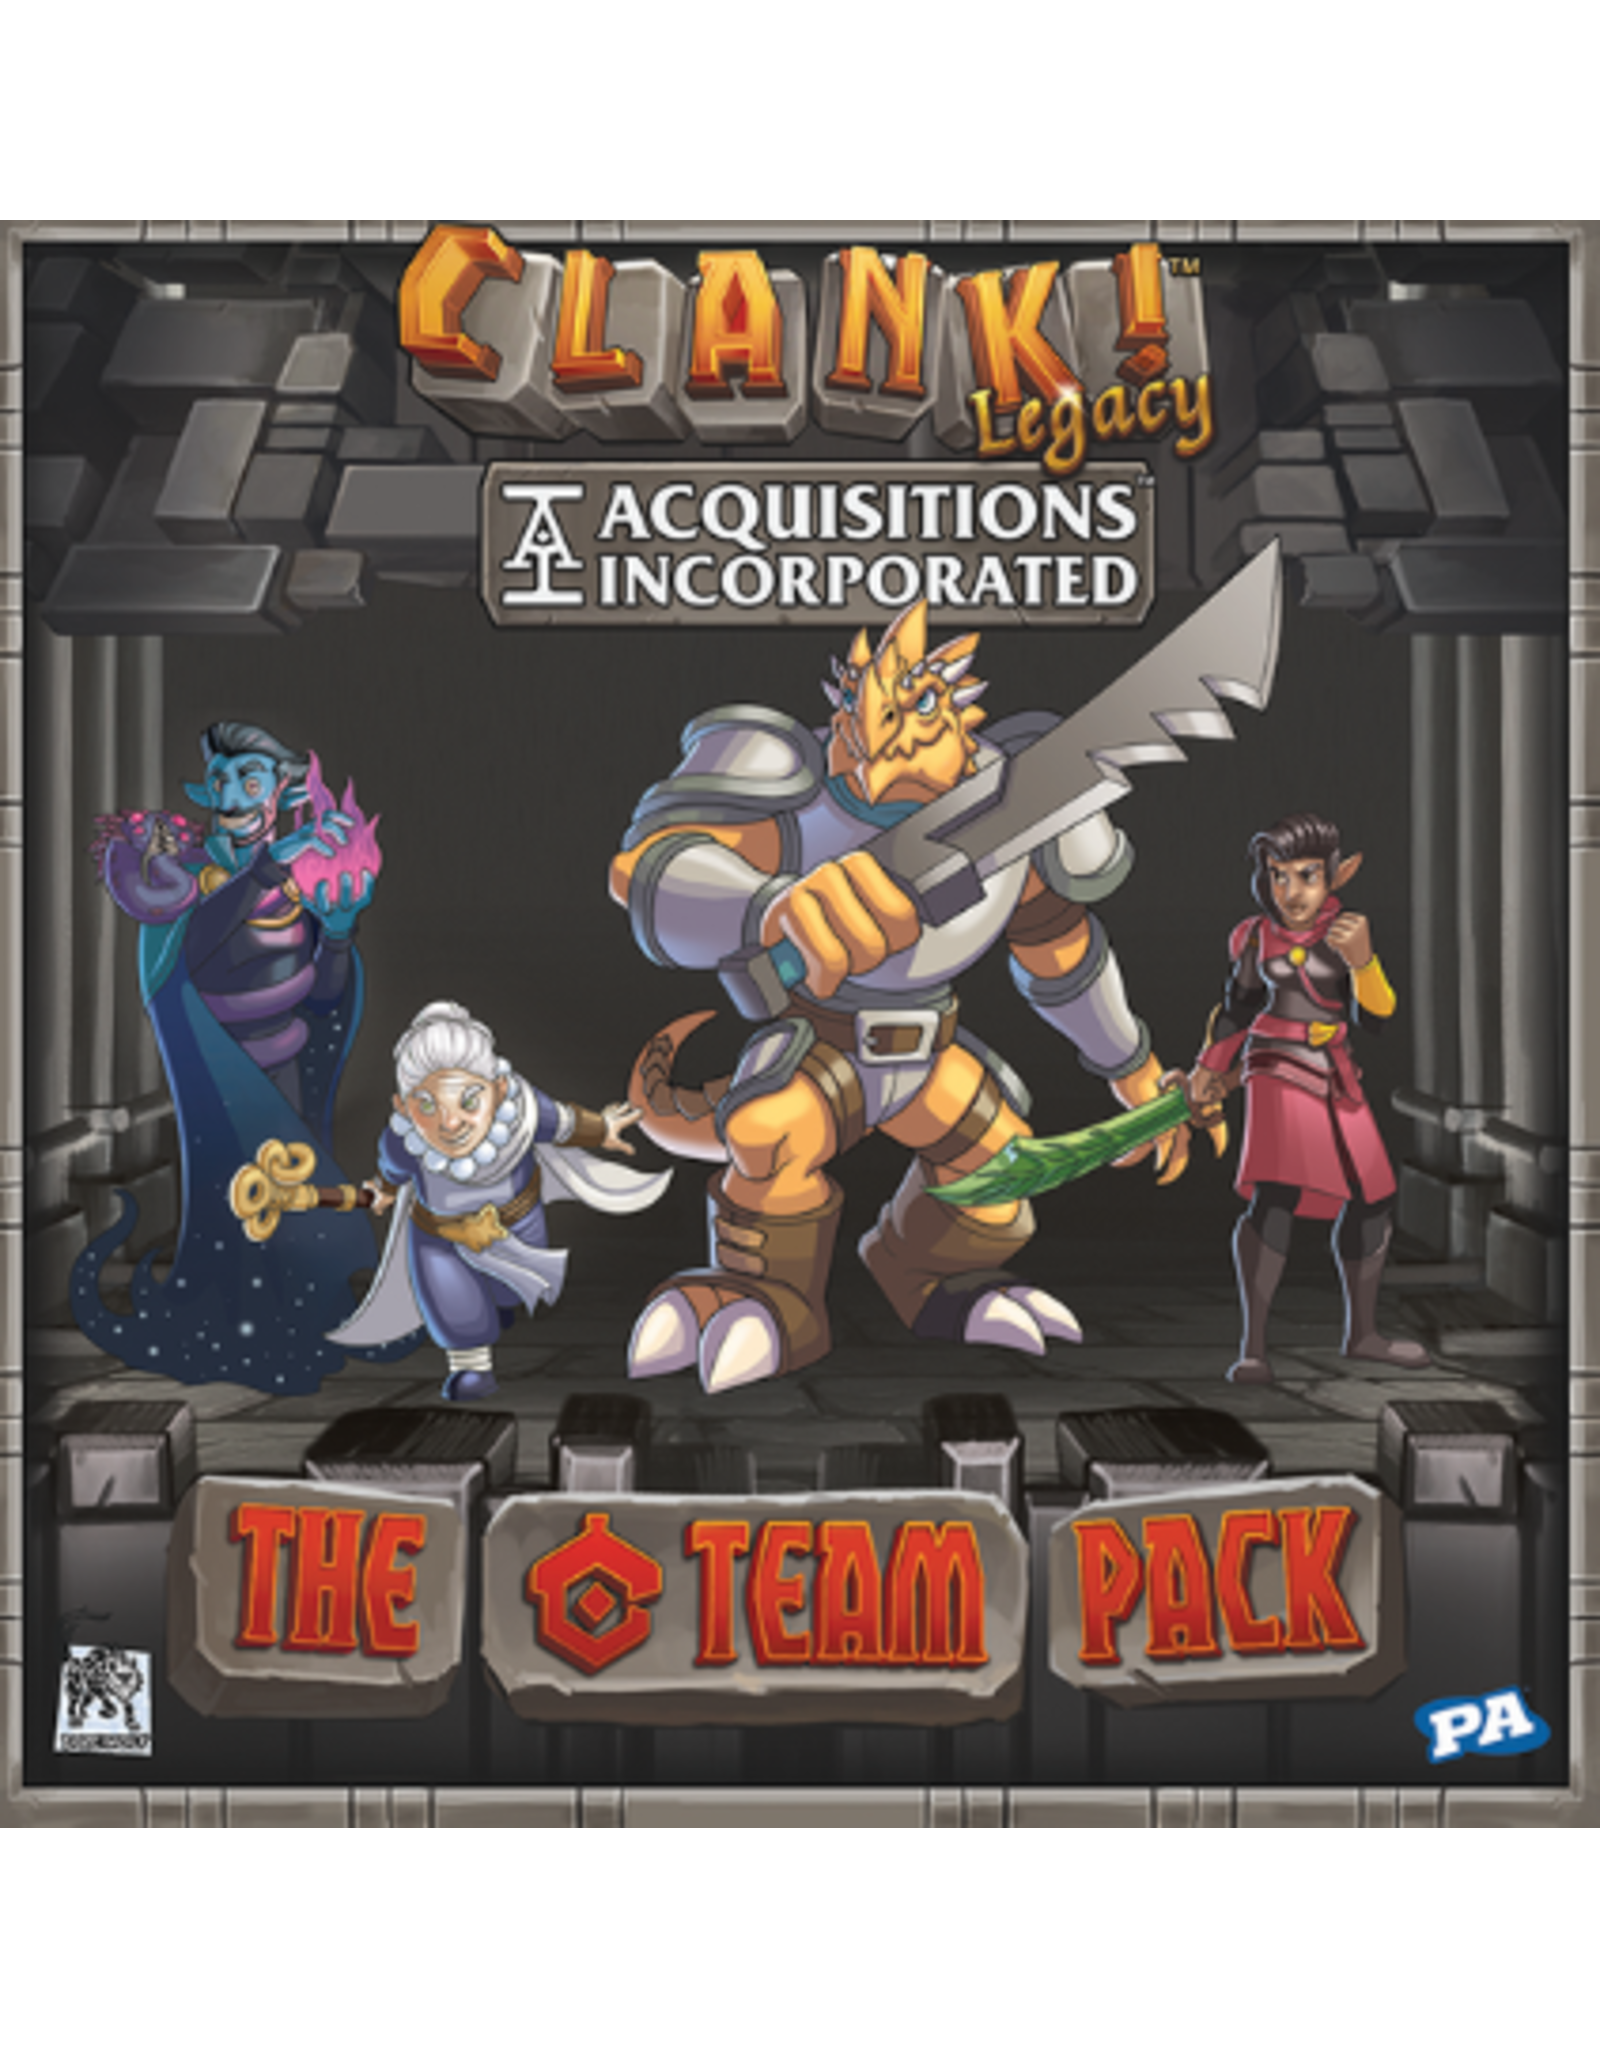 Renegade Clank! Legacy AI: The C Team Pack